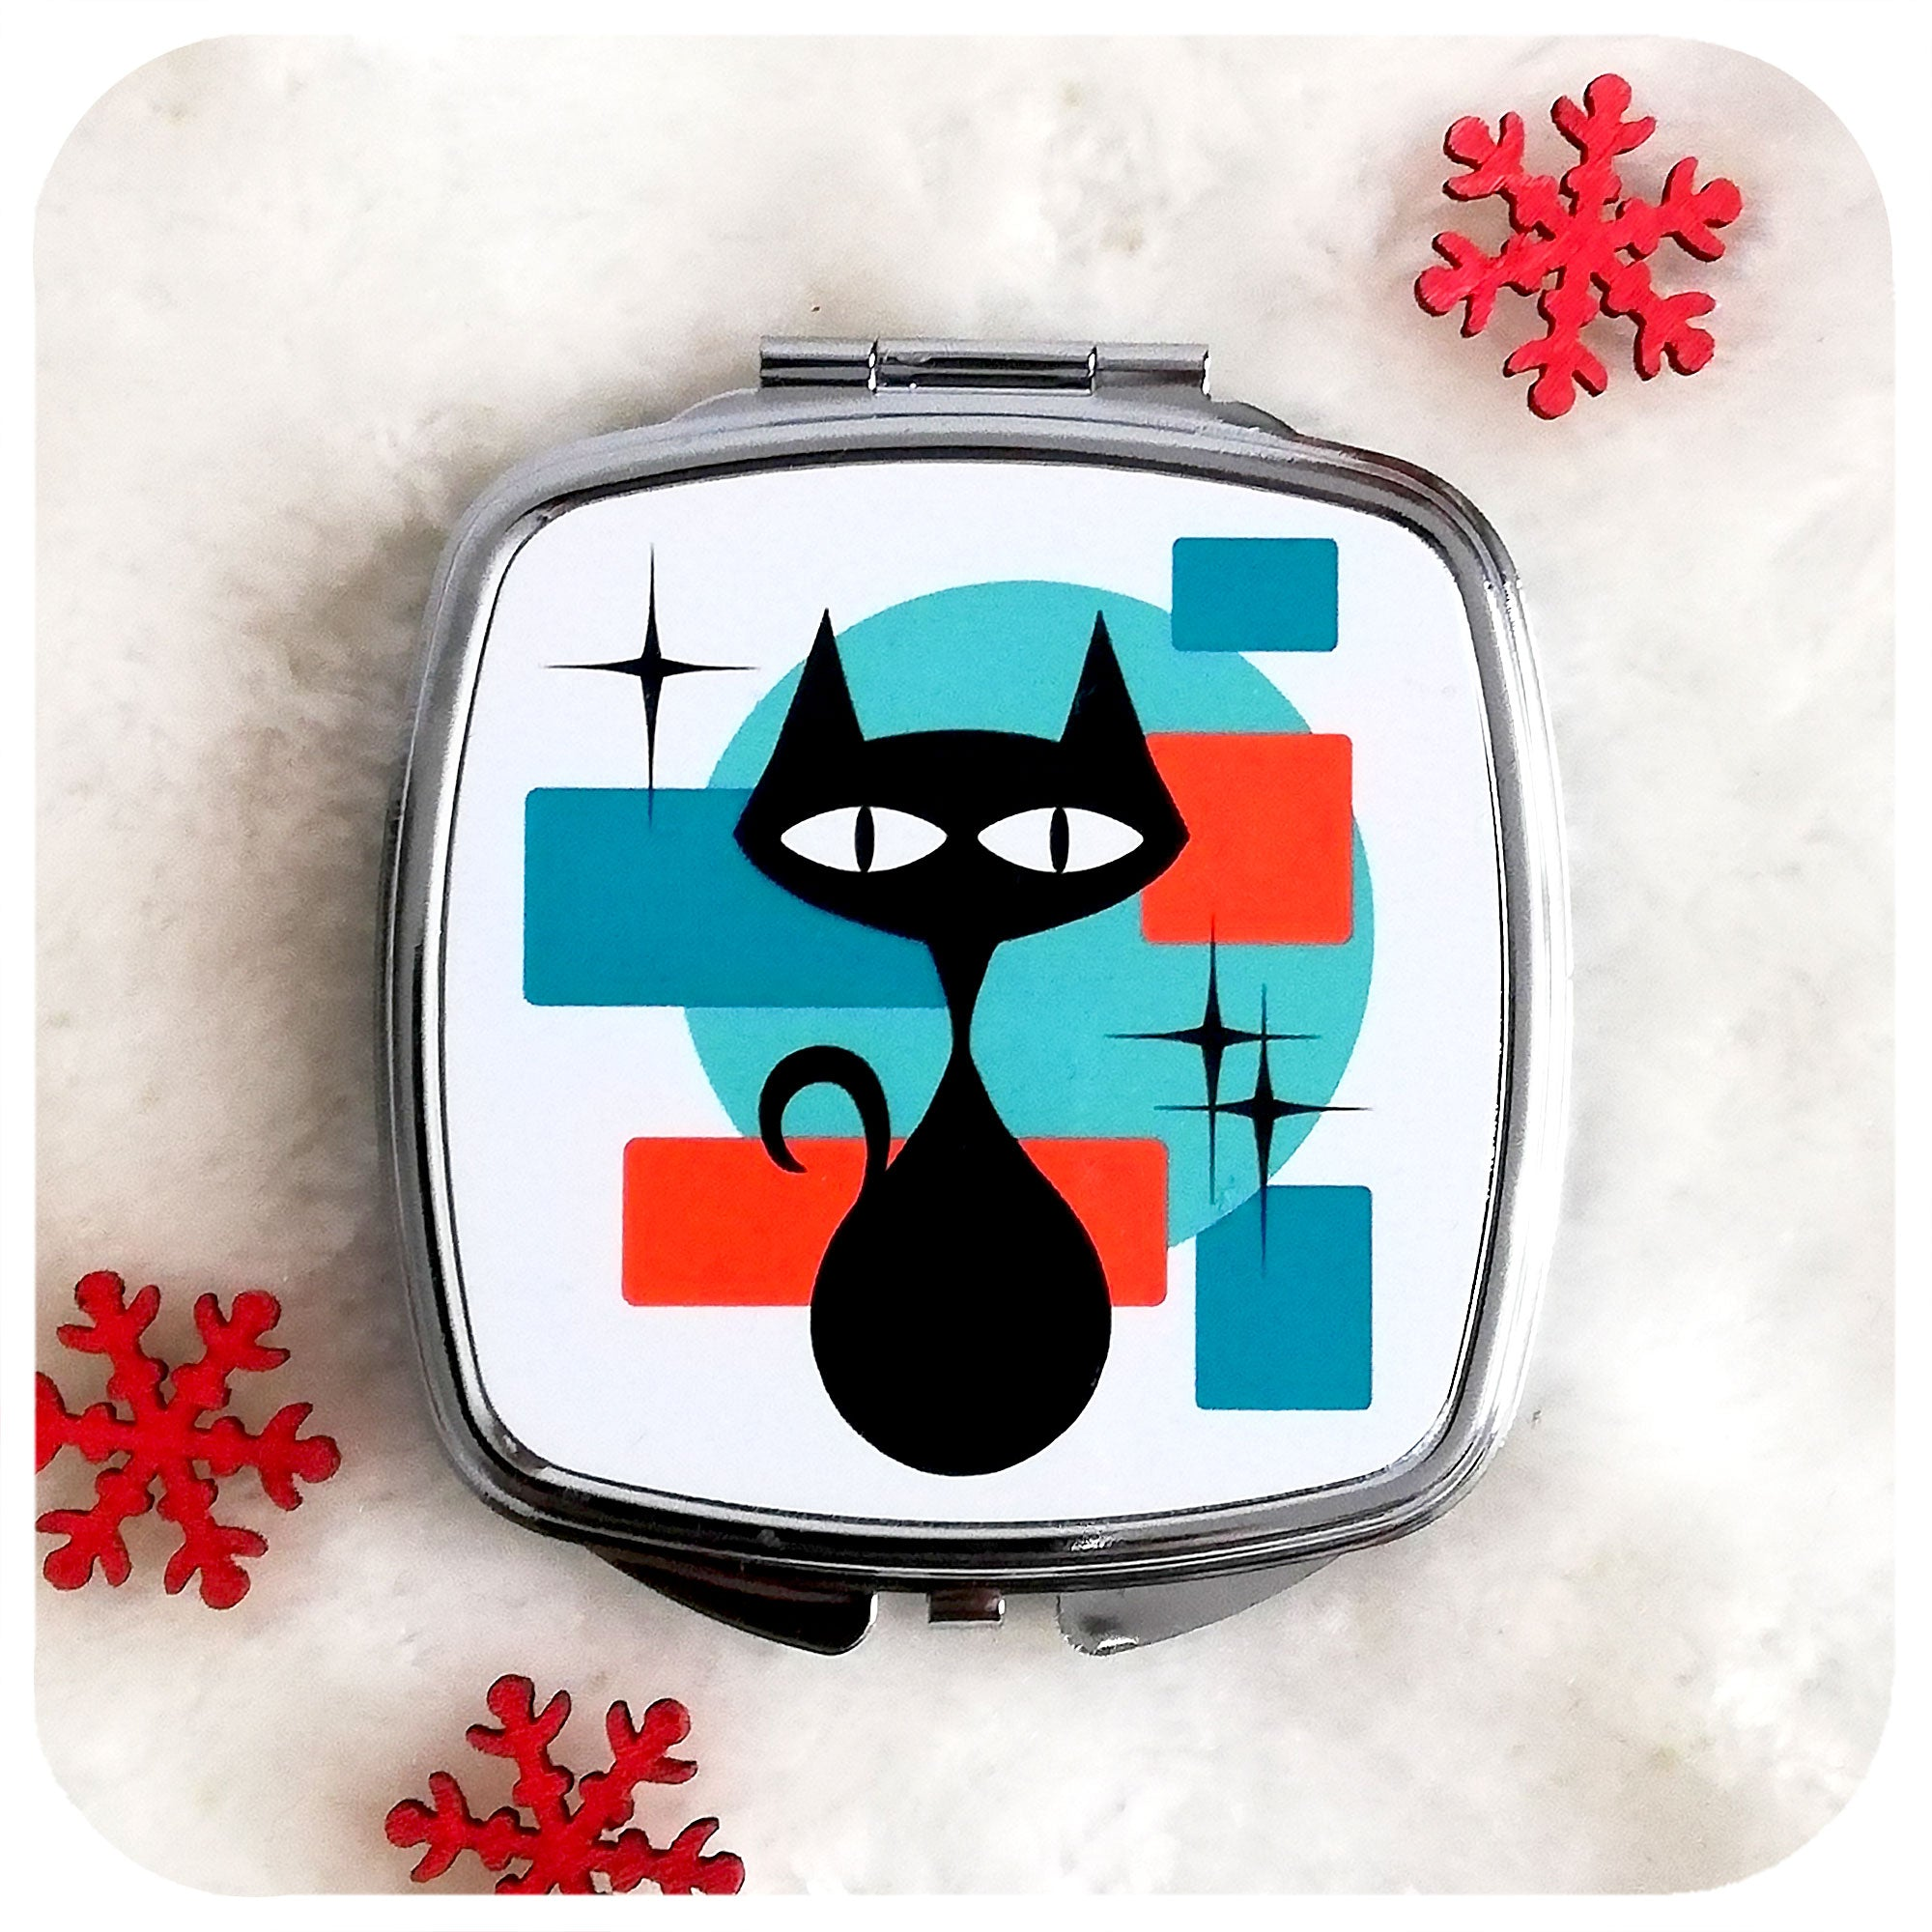 Atomic Cat 50s style Compact Mirror on white fur with Christmas stars | The Inkabilly Emporium